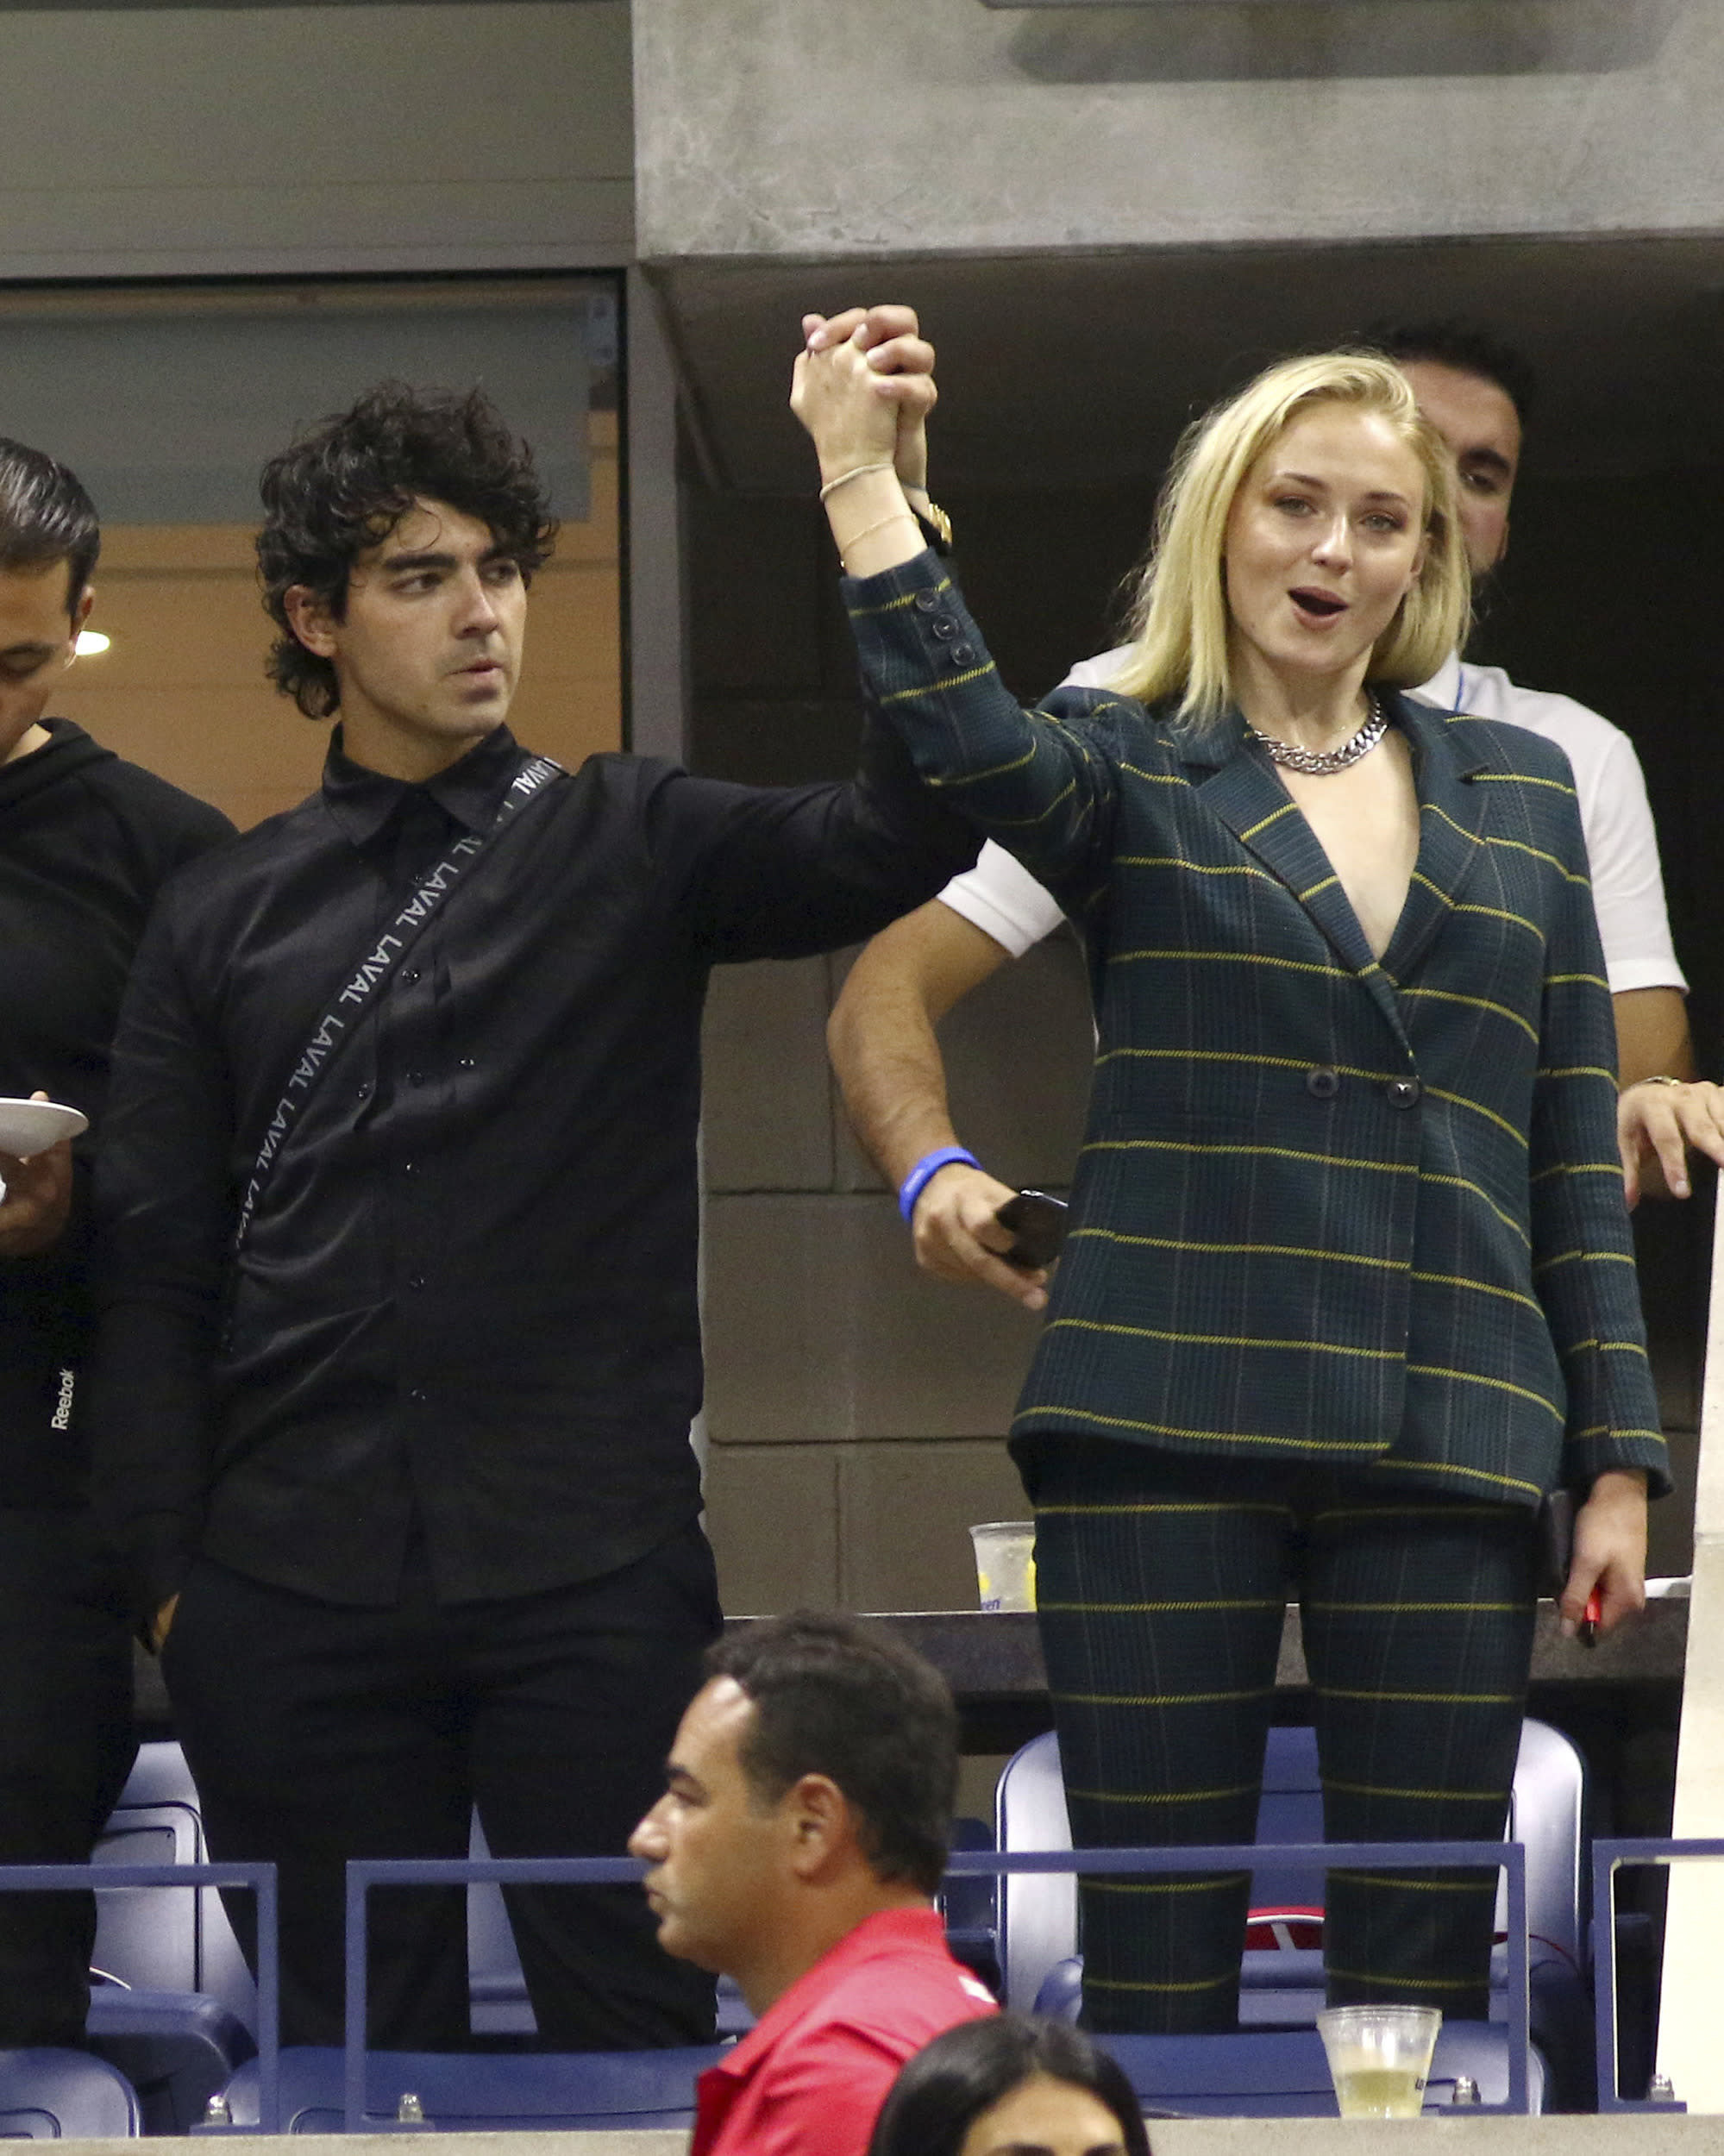 Joe Jonas, left, and Sophie Turner attend the third round of the U.S. Open tennis tournament at the USTA Billie Jean King National Tennis Center on Friday, Aug. 31, 2018, in New York. (Photo by Greg Allen/Invision/AP)